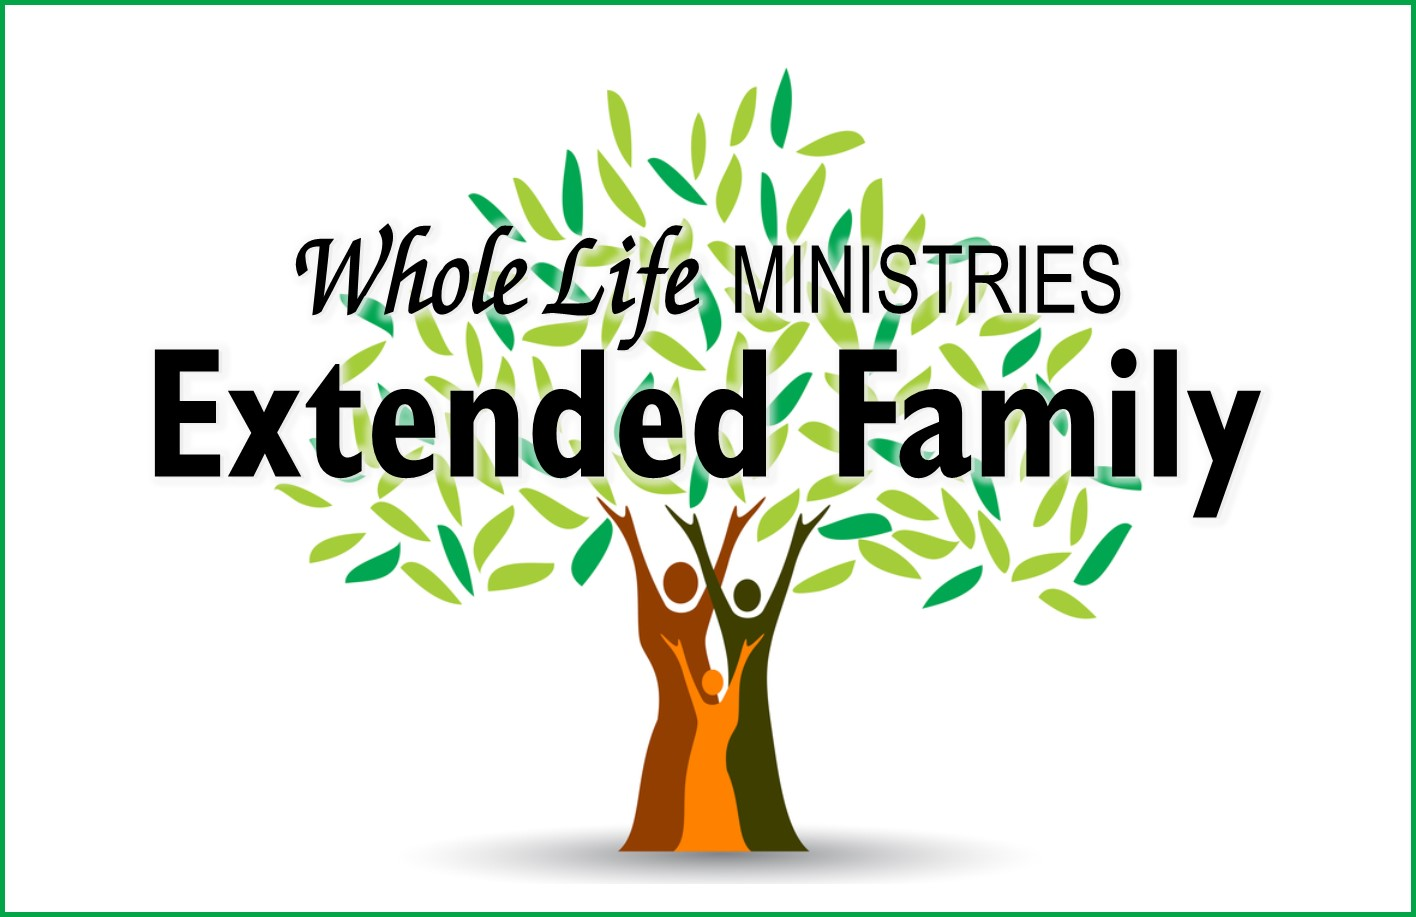 Whole Life Ministries Extended Family Church Members